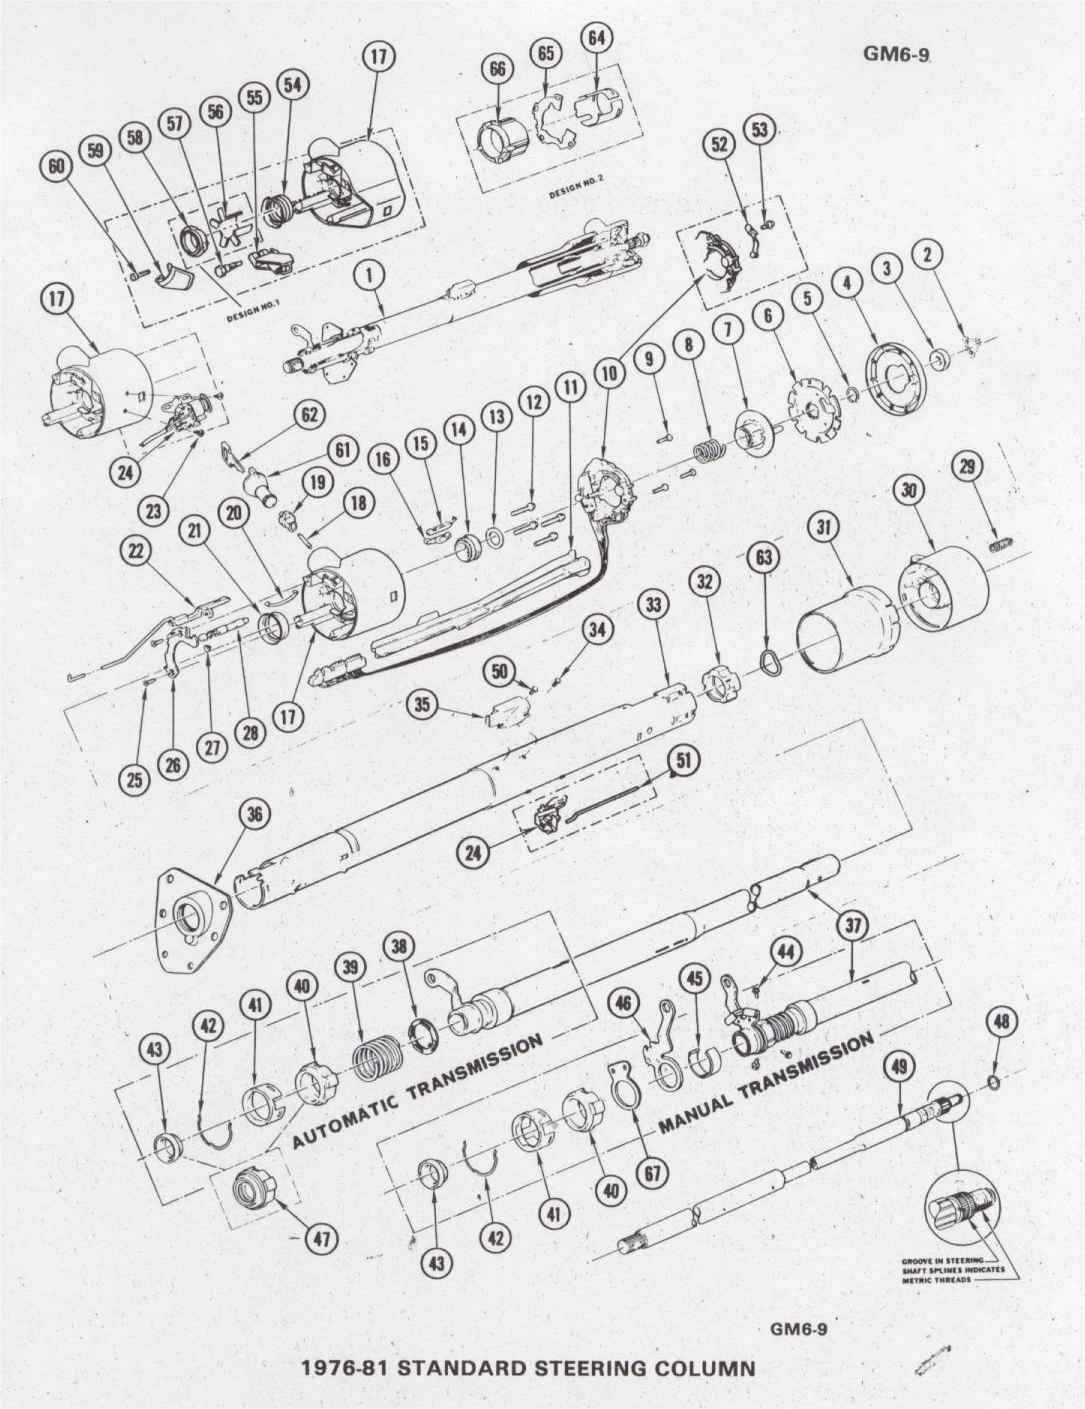 1980 Camaro Pdm Assembly Service Info Block Alternator Without Power Steering Diagram For A 1969 Corvette Std Column